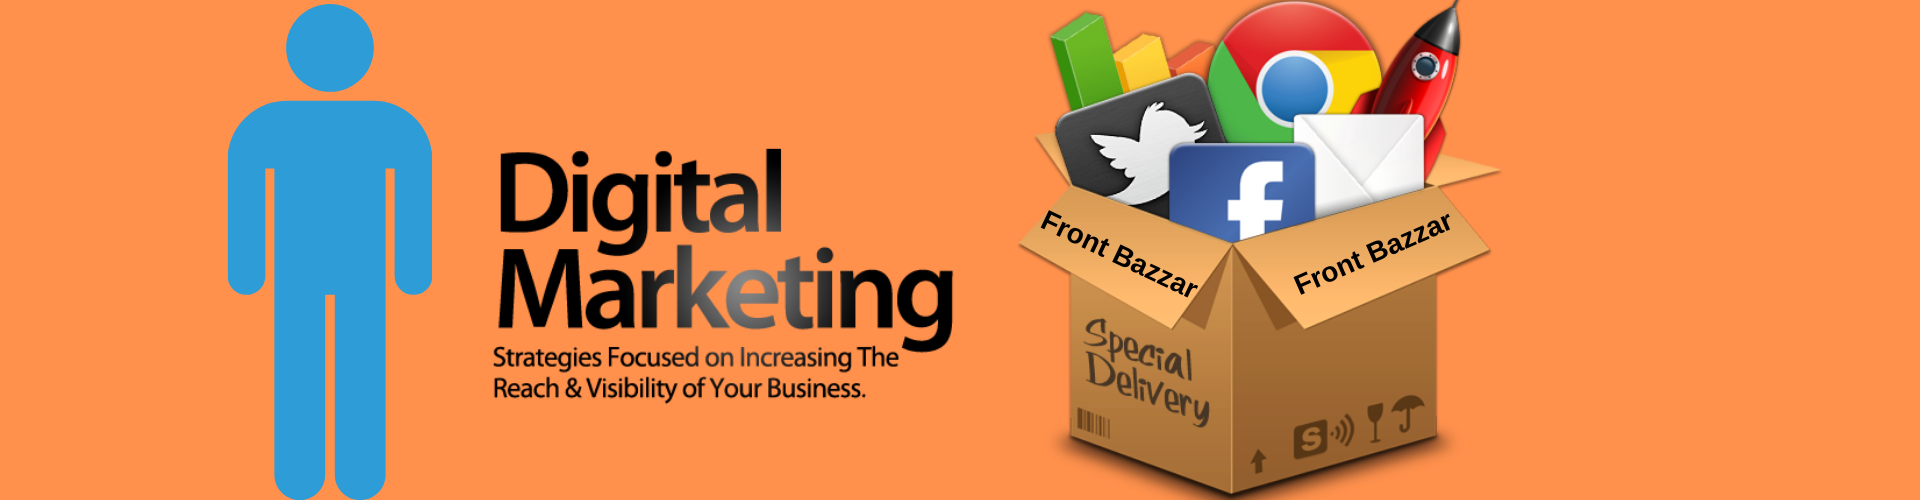 digital marketing service provider in india